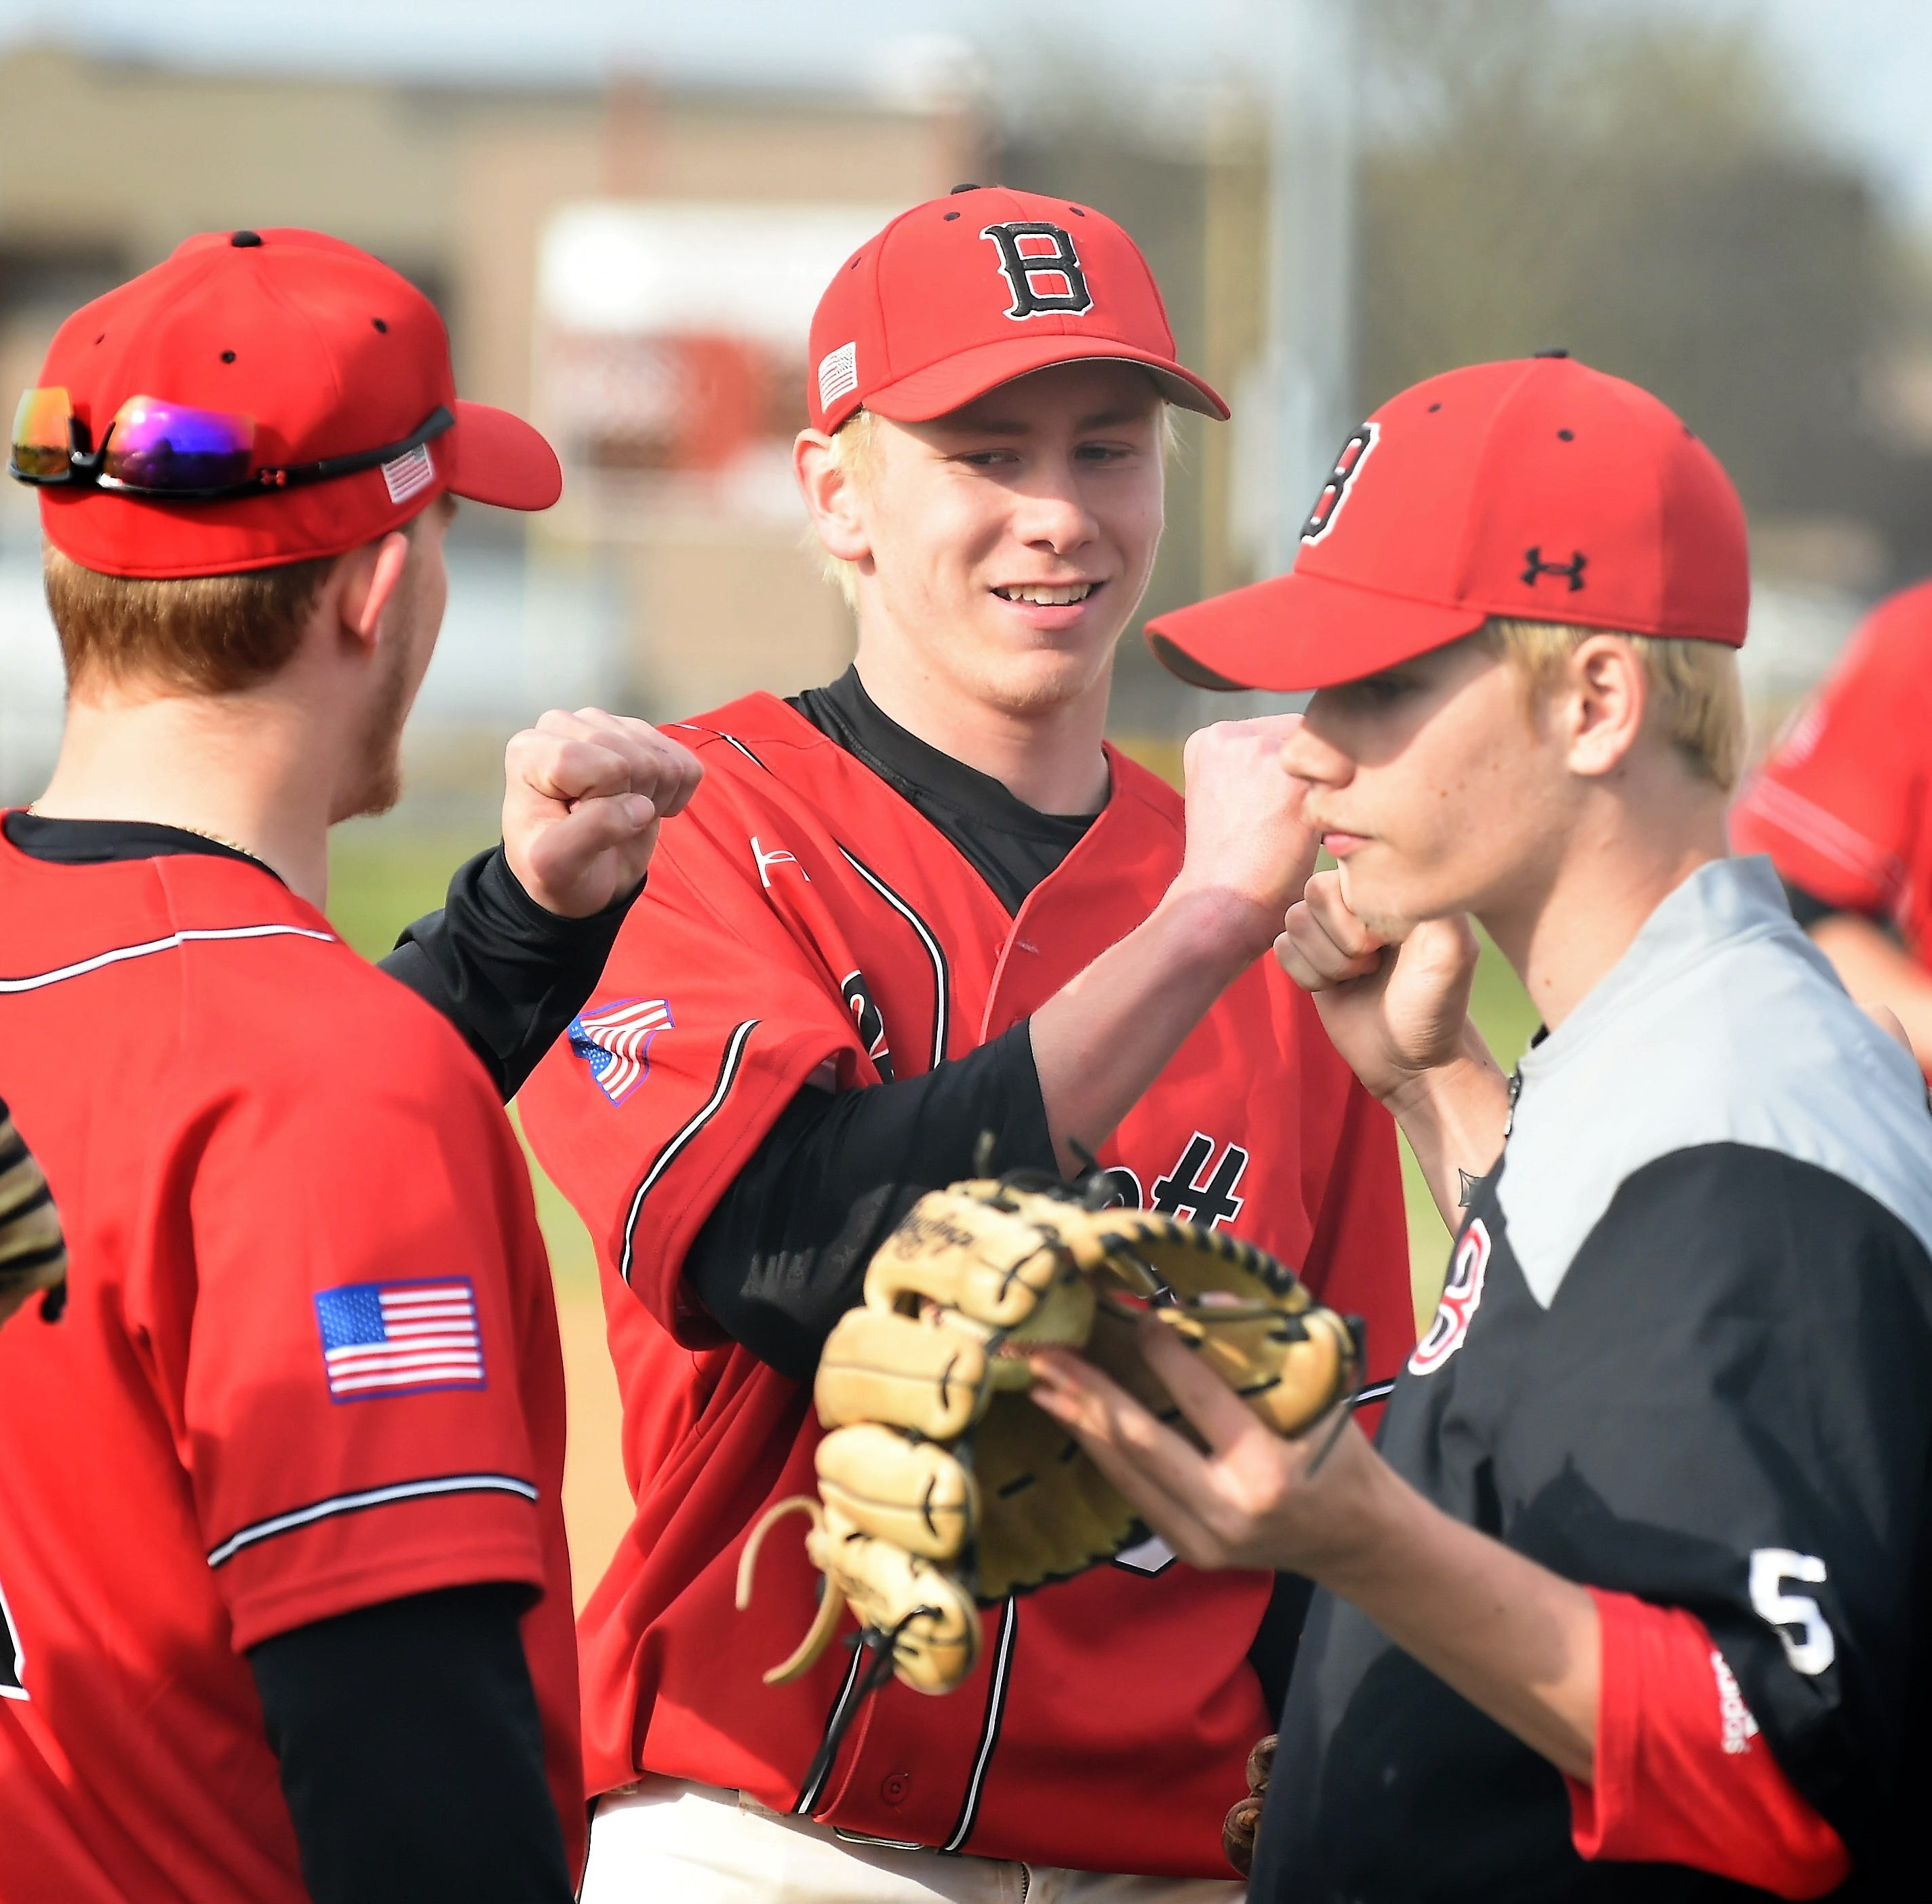 James M. Bennett baseball team stands united in quest for a title